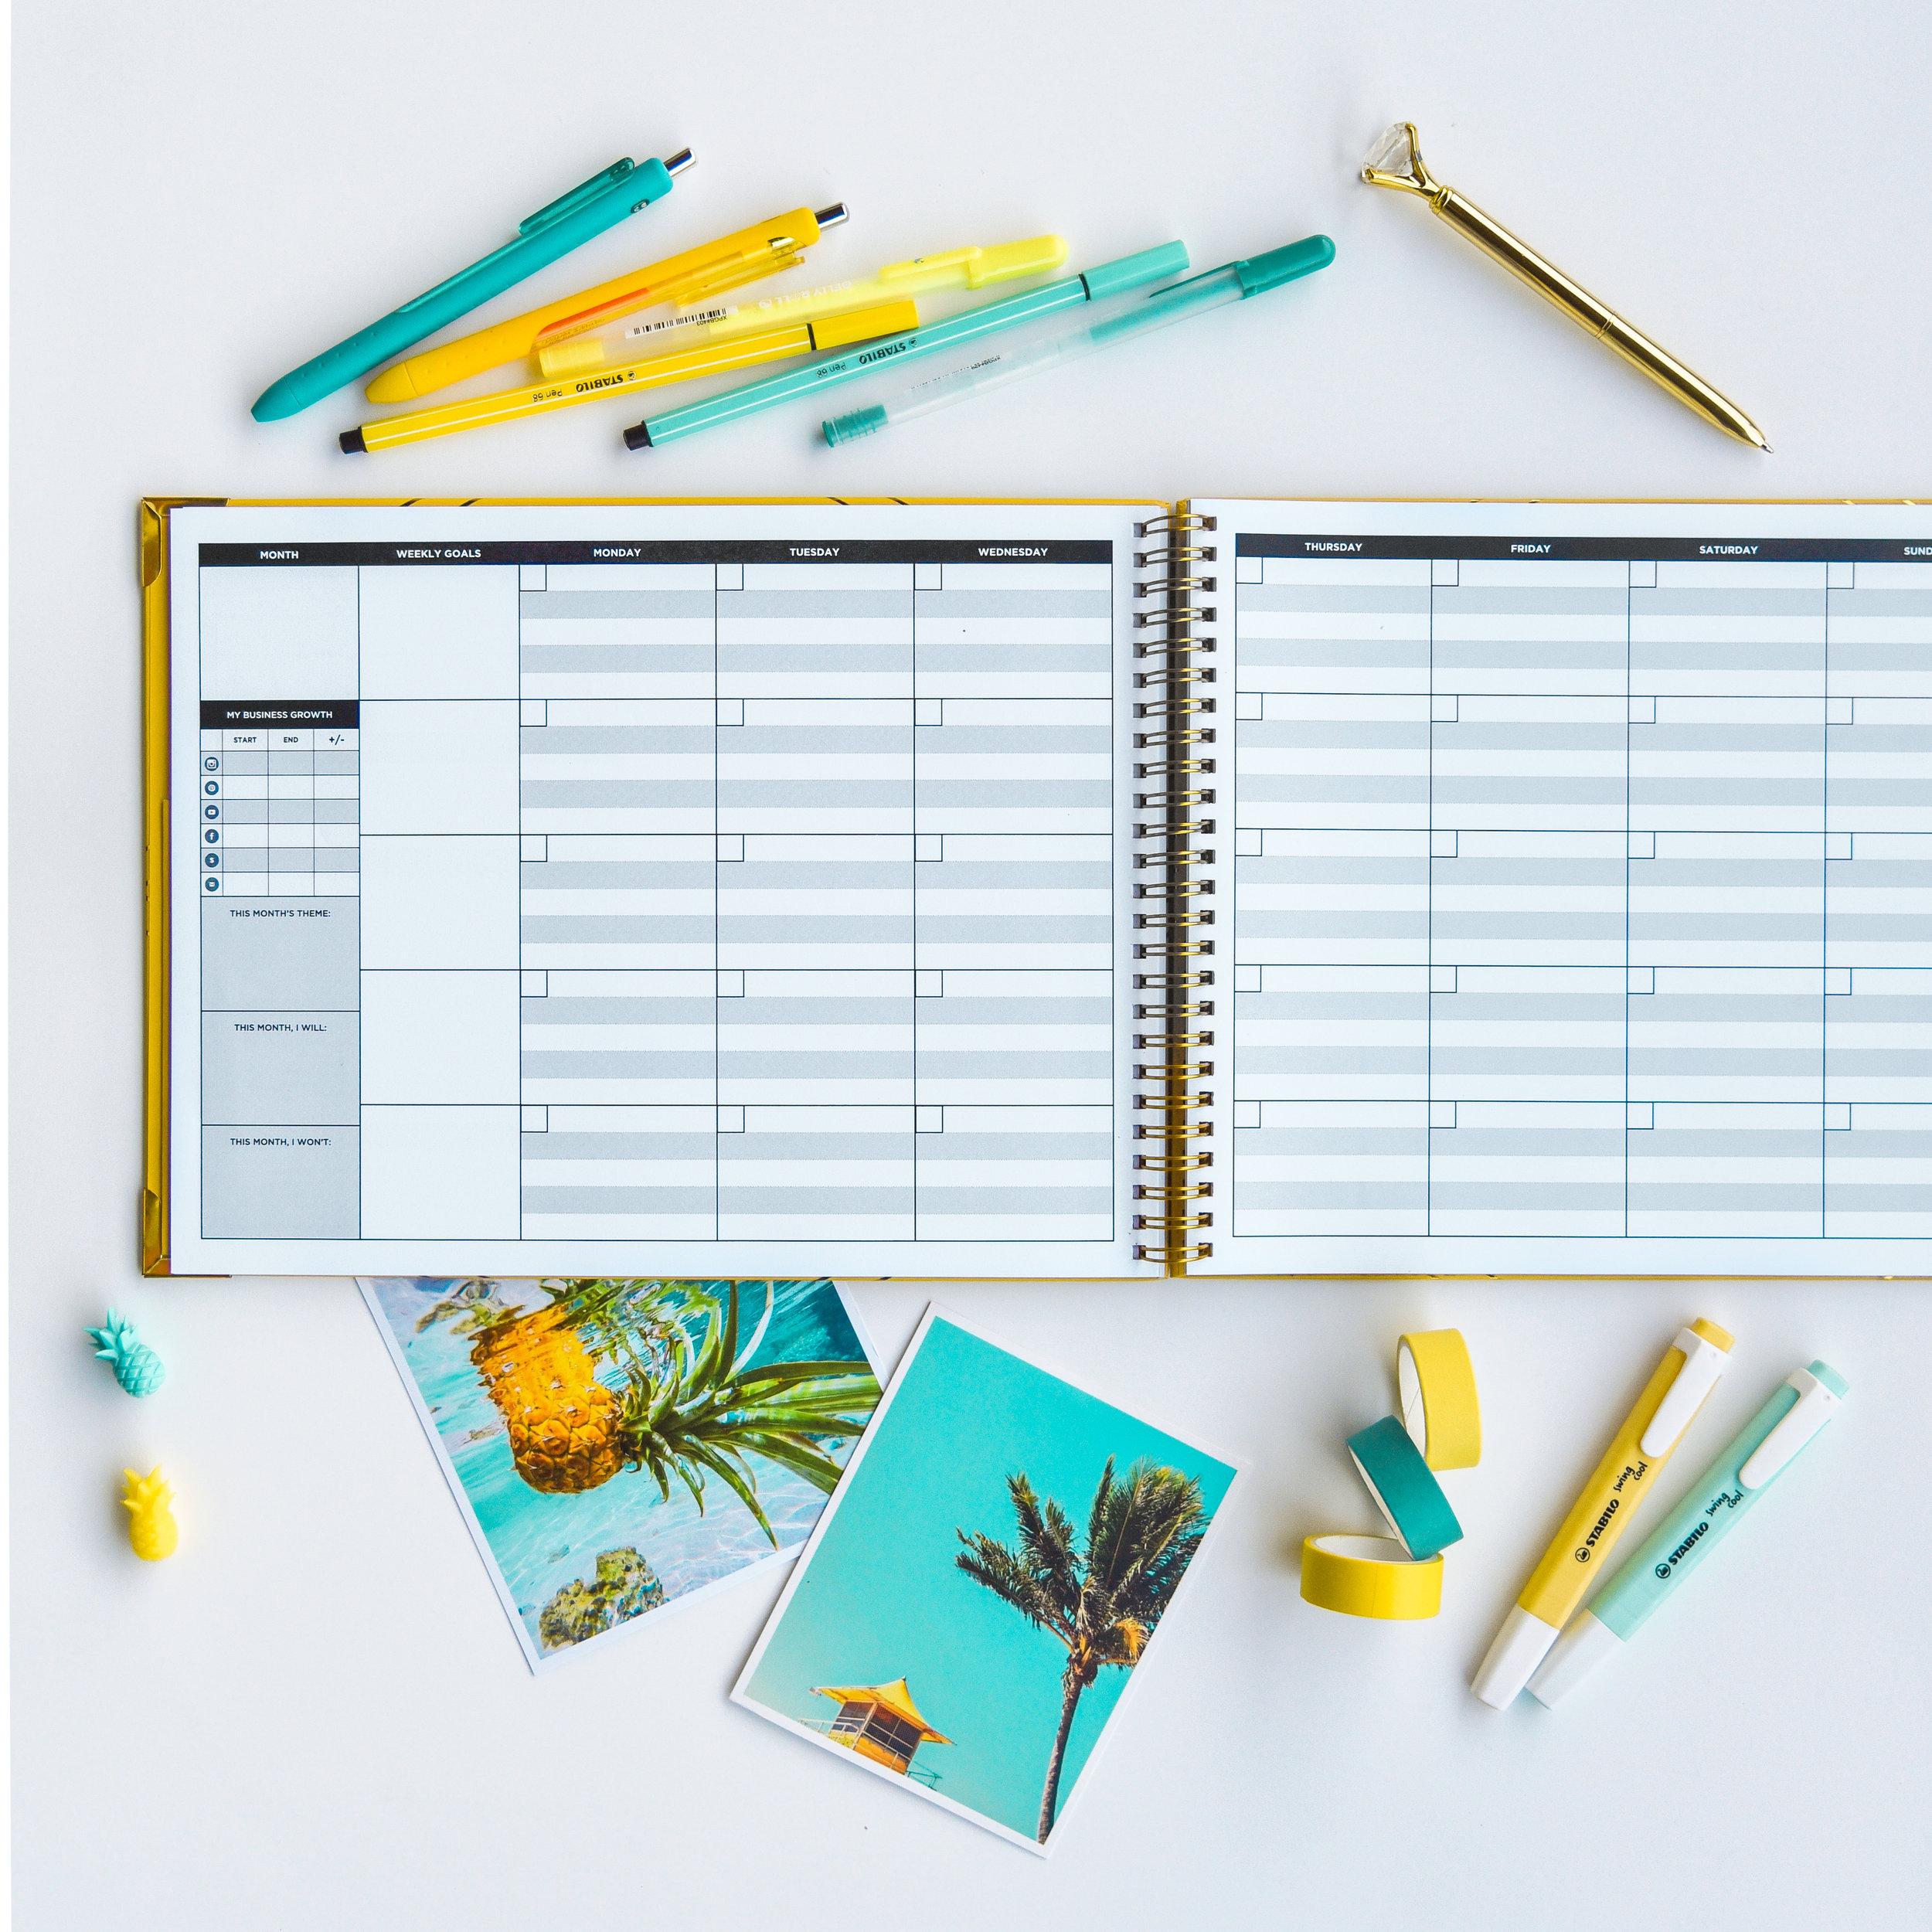 See why 218 people have given this planner a 5 Star Rating.